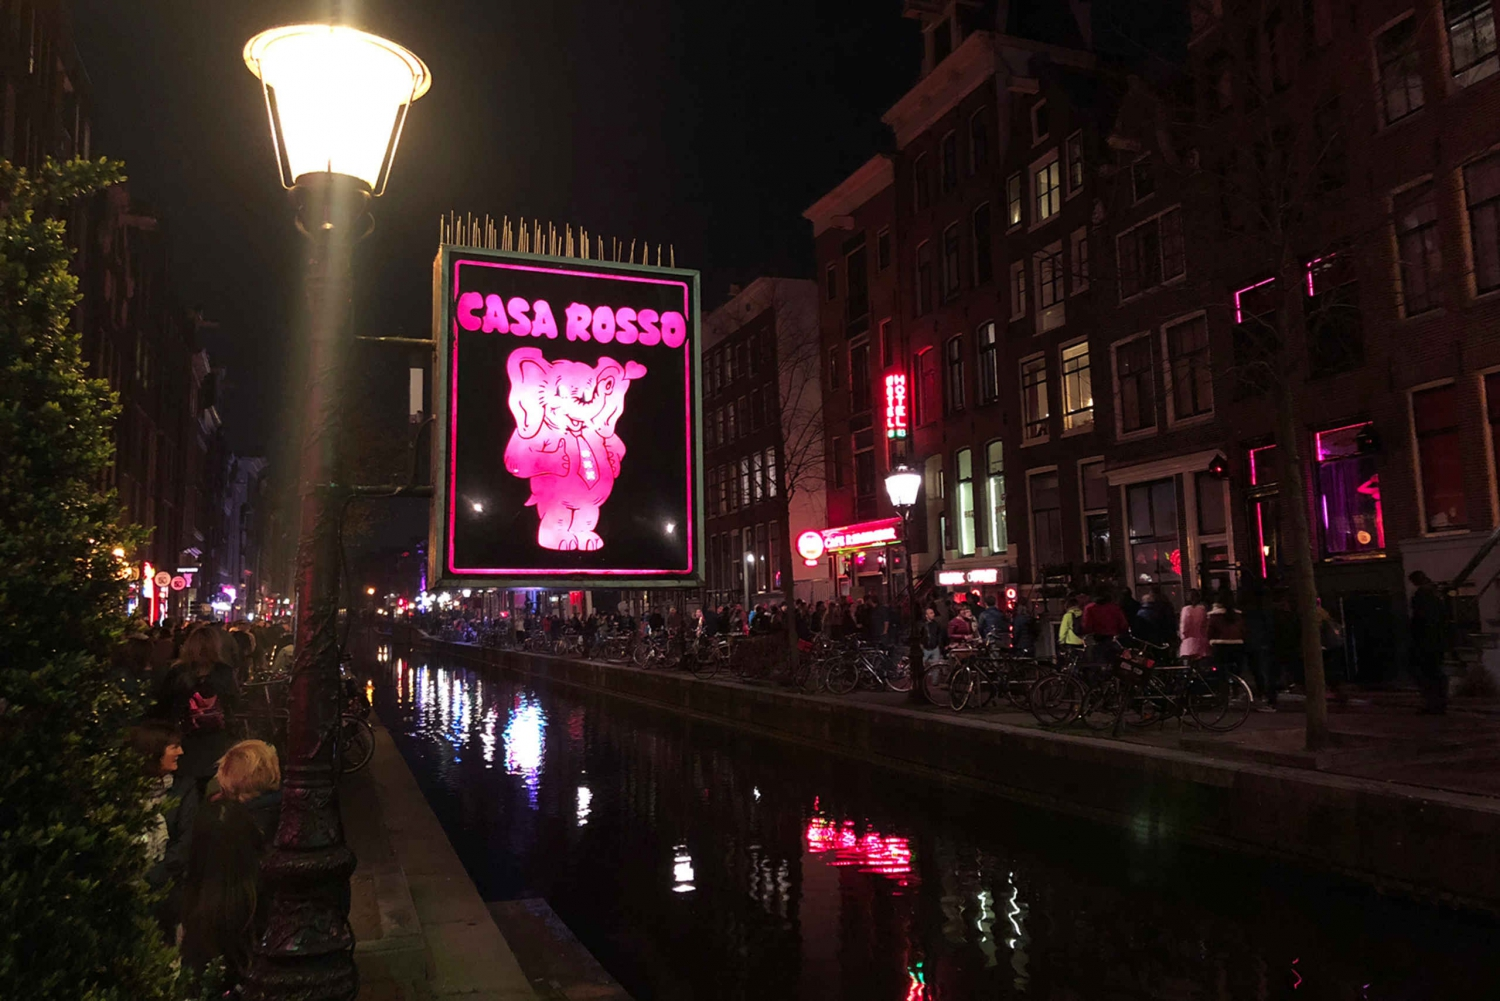 Red Light District Walking Tour and Show at Casa Rosso